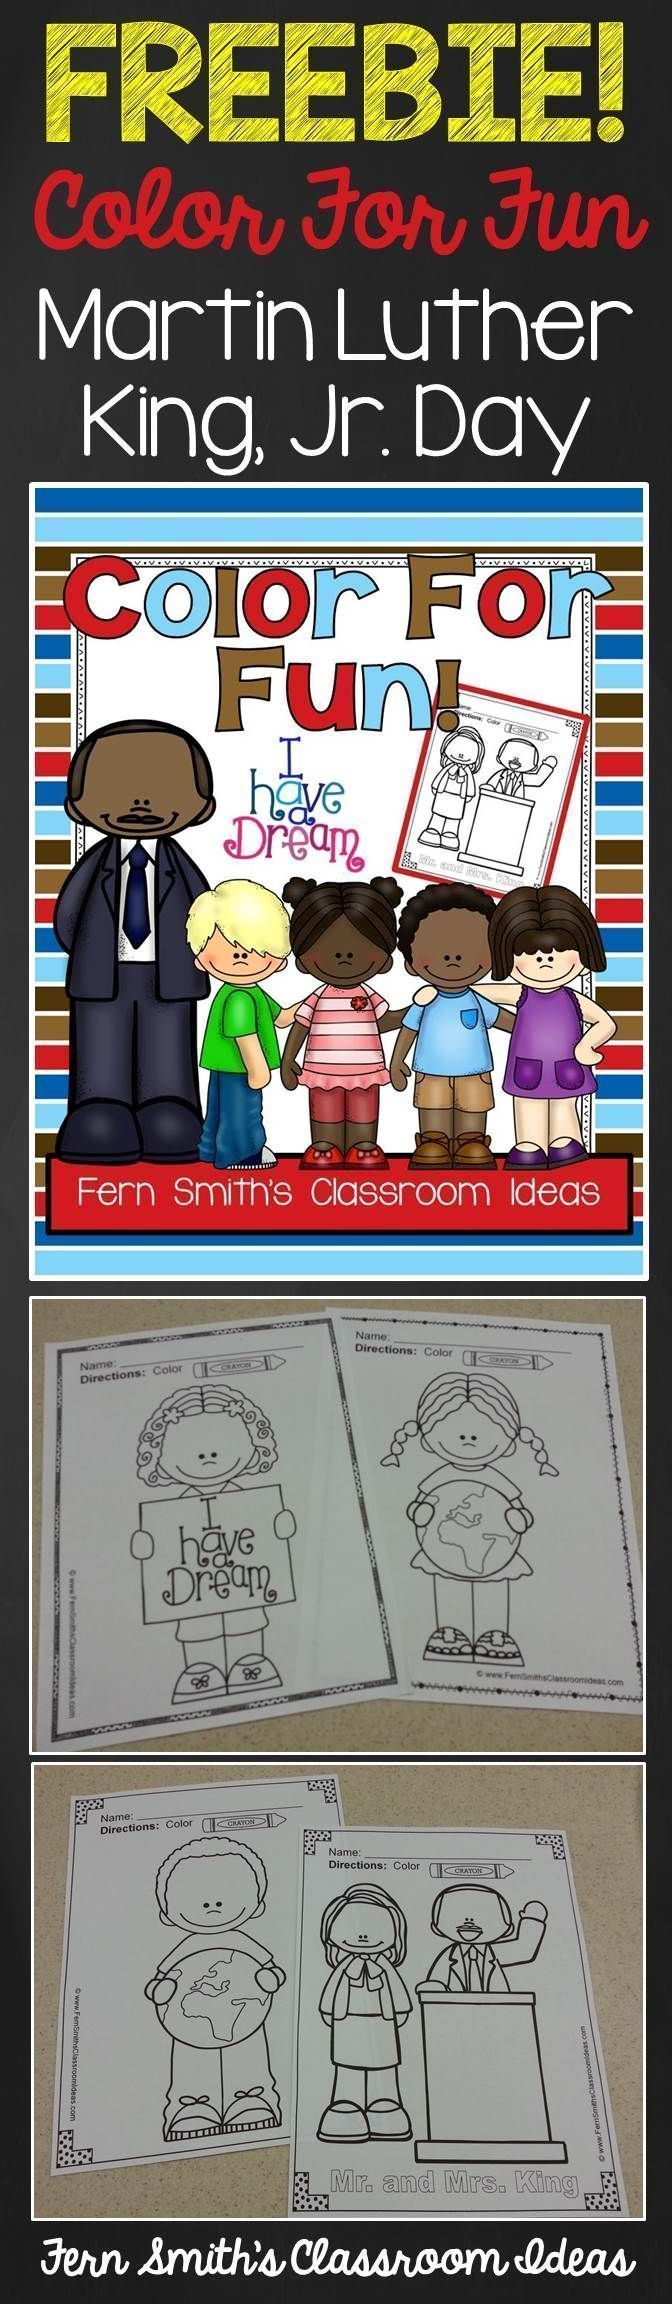 Bookmarks to color of dr king -  Free Martin Luther King Jr Color For Fun Printable Coloring Pages Freebie